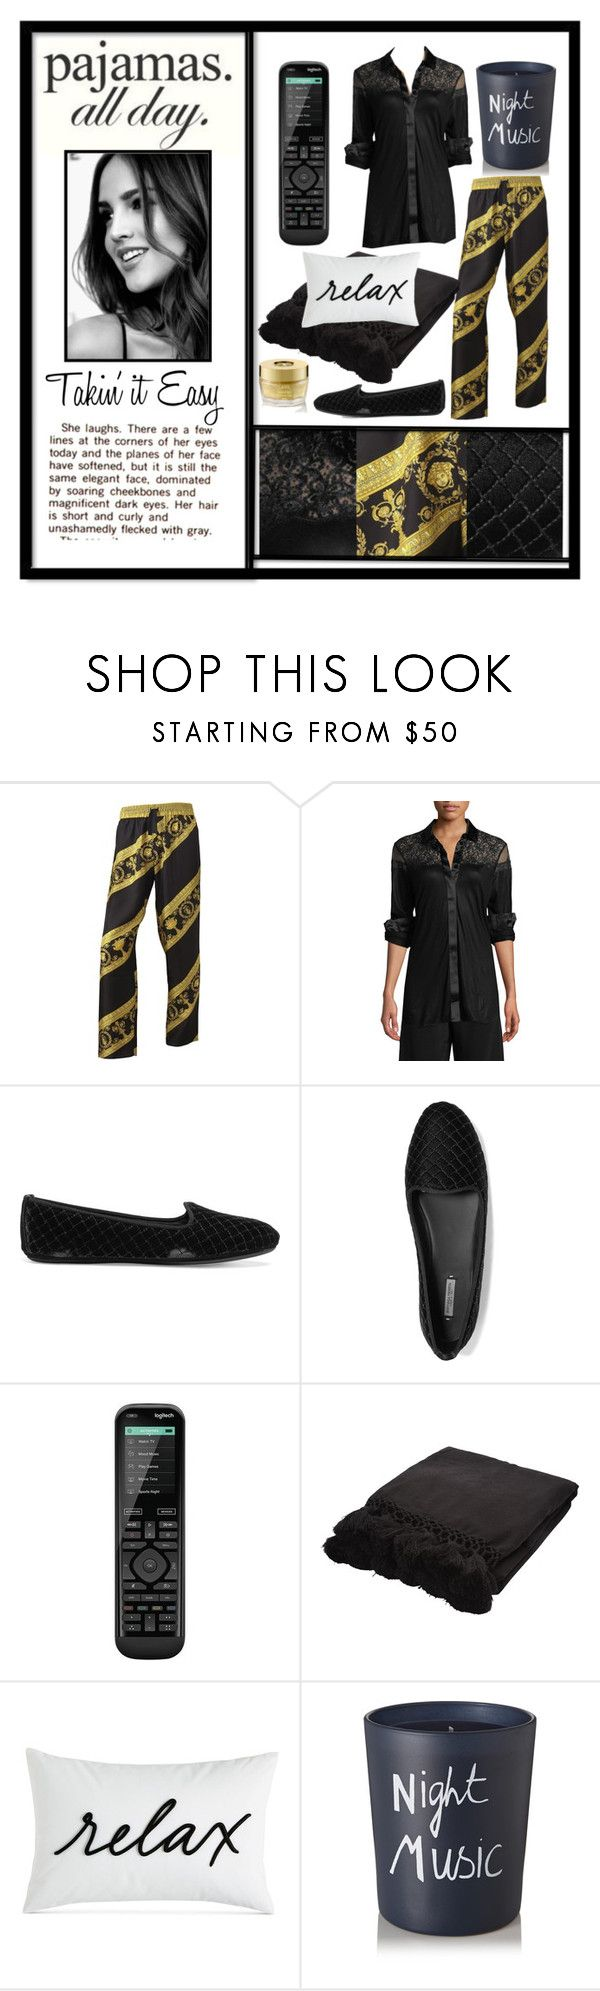 """Pajamas All Day"" by wildorchid21-1 ❤ liked on Polyvore featuring Versace, La Perla, Bottega Veneta, Logitech, Kate Spade, Charter Club, Bella Freud, Oribe, polyvorepresents and LovelyLoungewear"